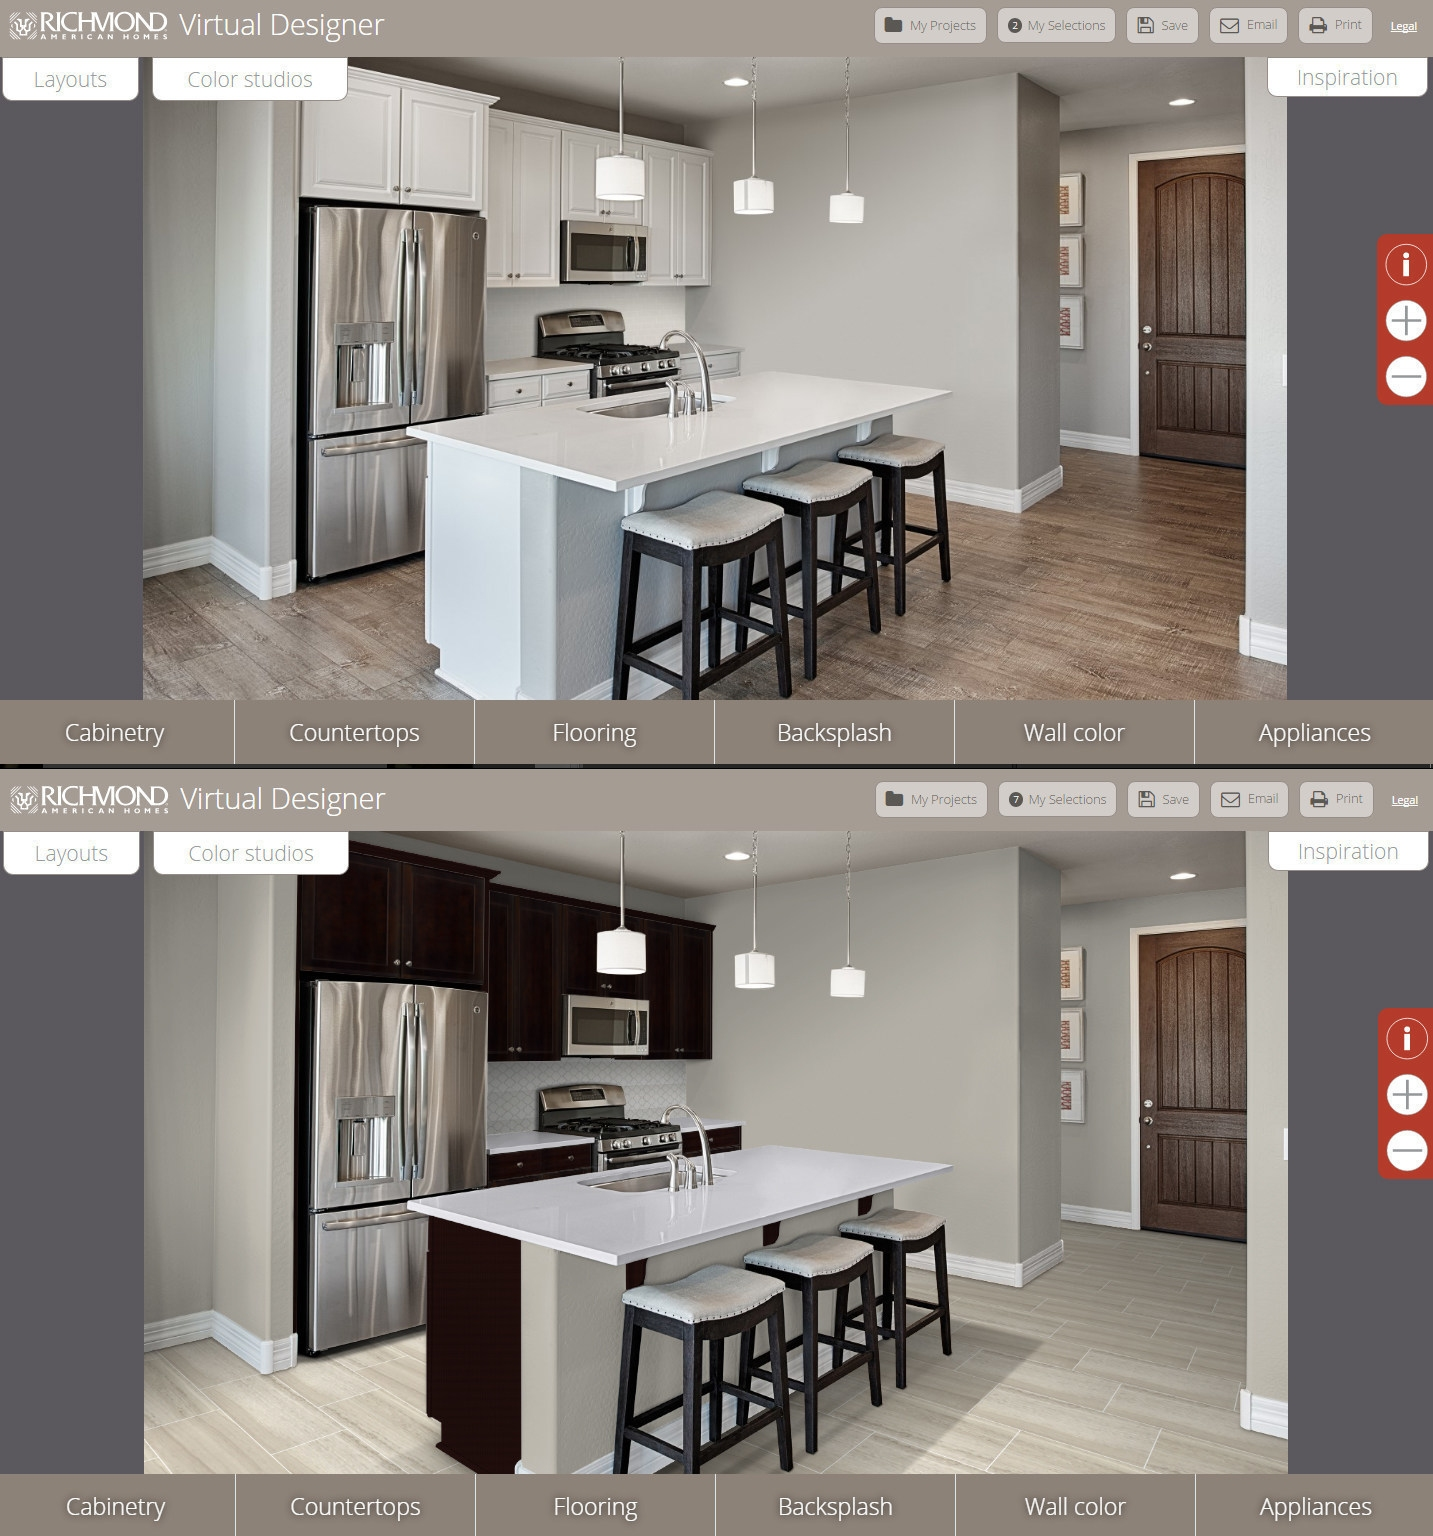 kitchen builder cabinet wine rack arizona home launches virtual design tool a that realistically presents flooring cabinetry countertops backsplashes and other elements in place was launched by